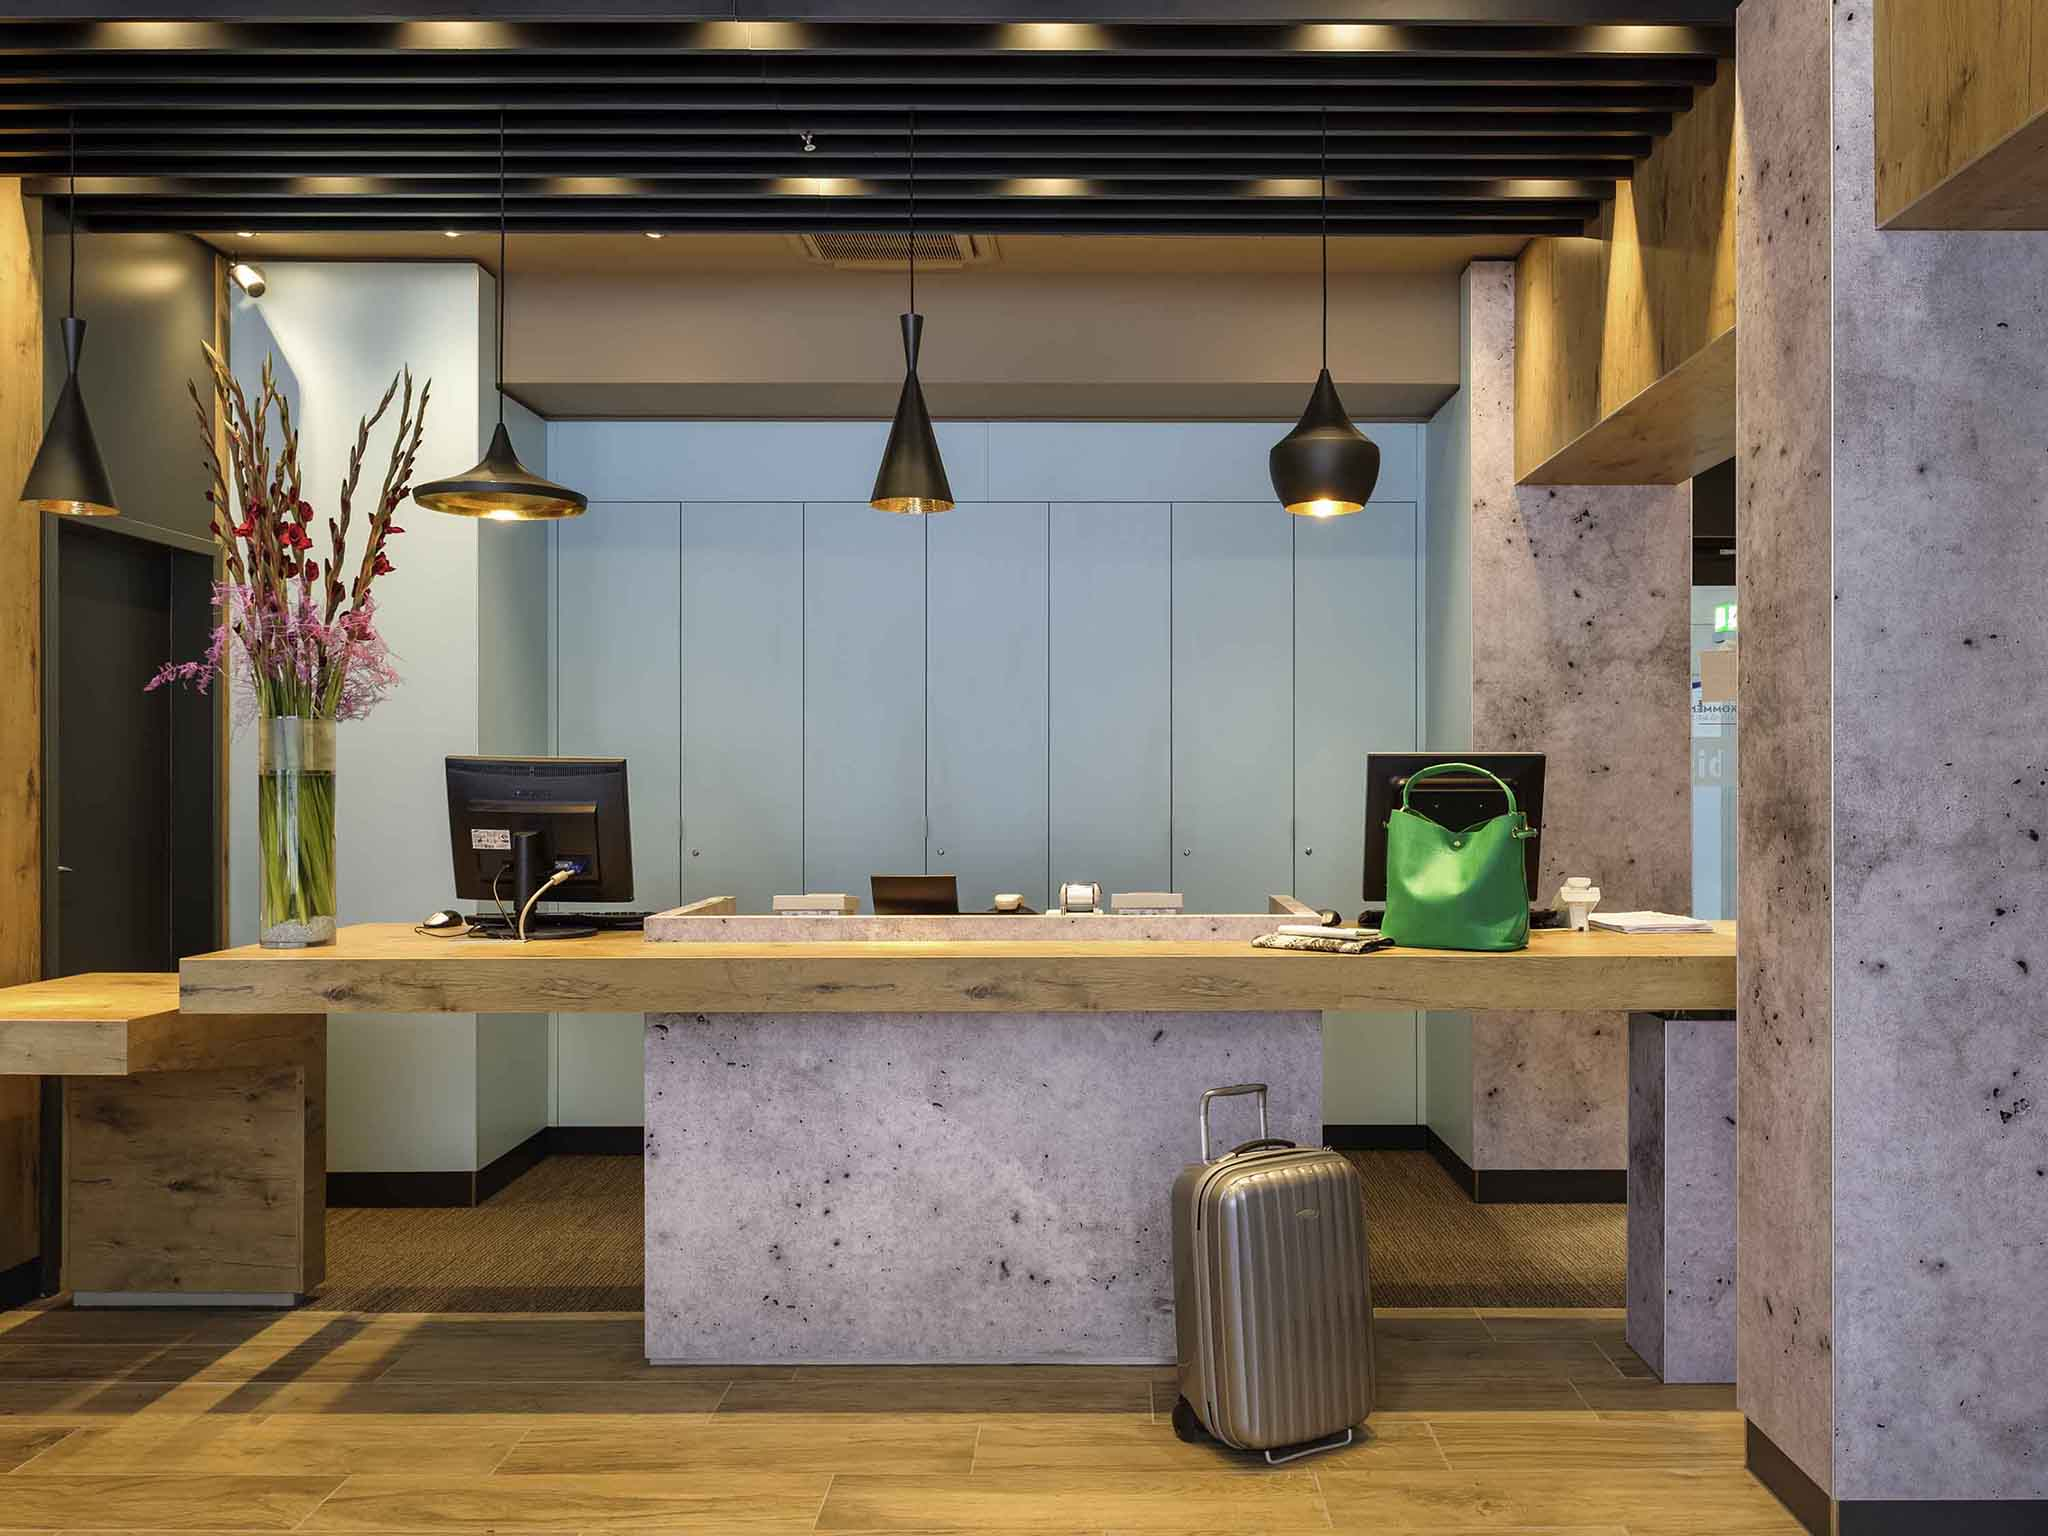 Hotel ibis Cologne Am Dom. Book your hotel in Cologne now!